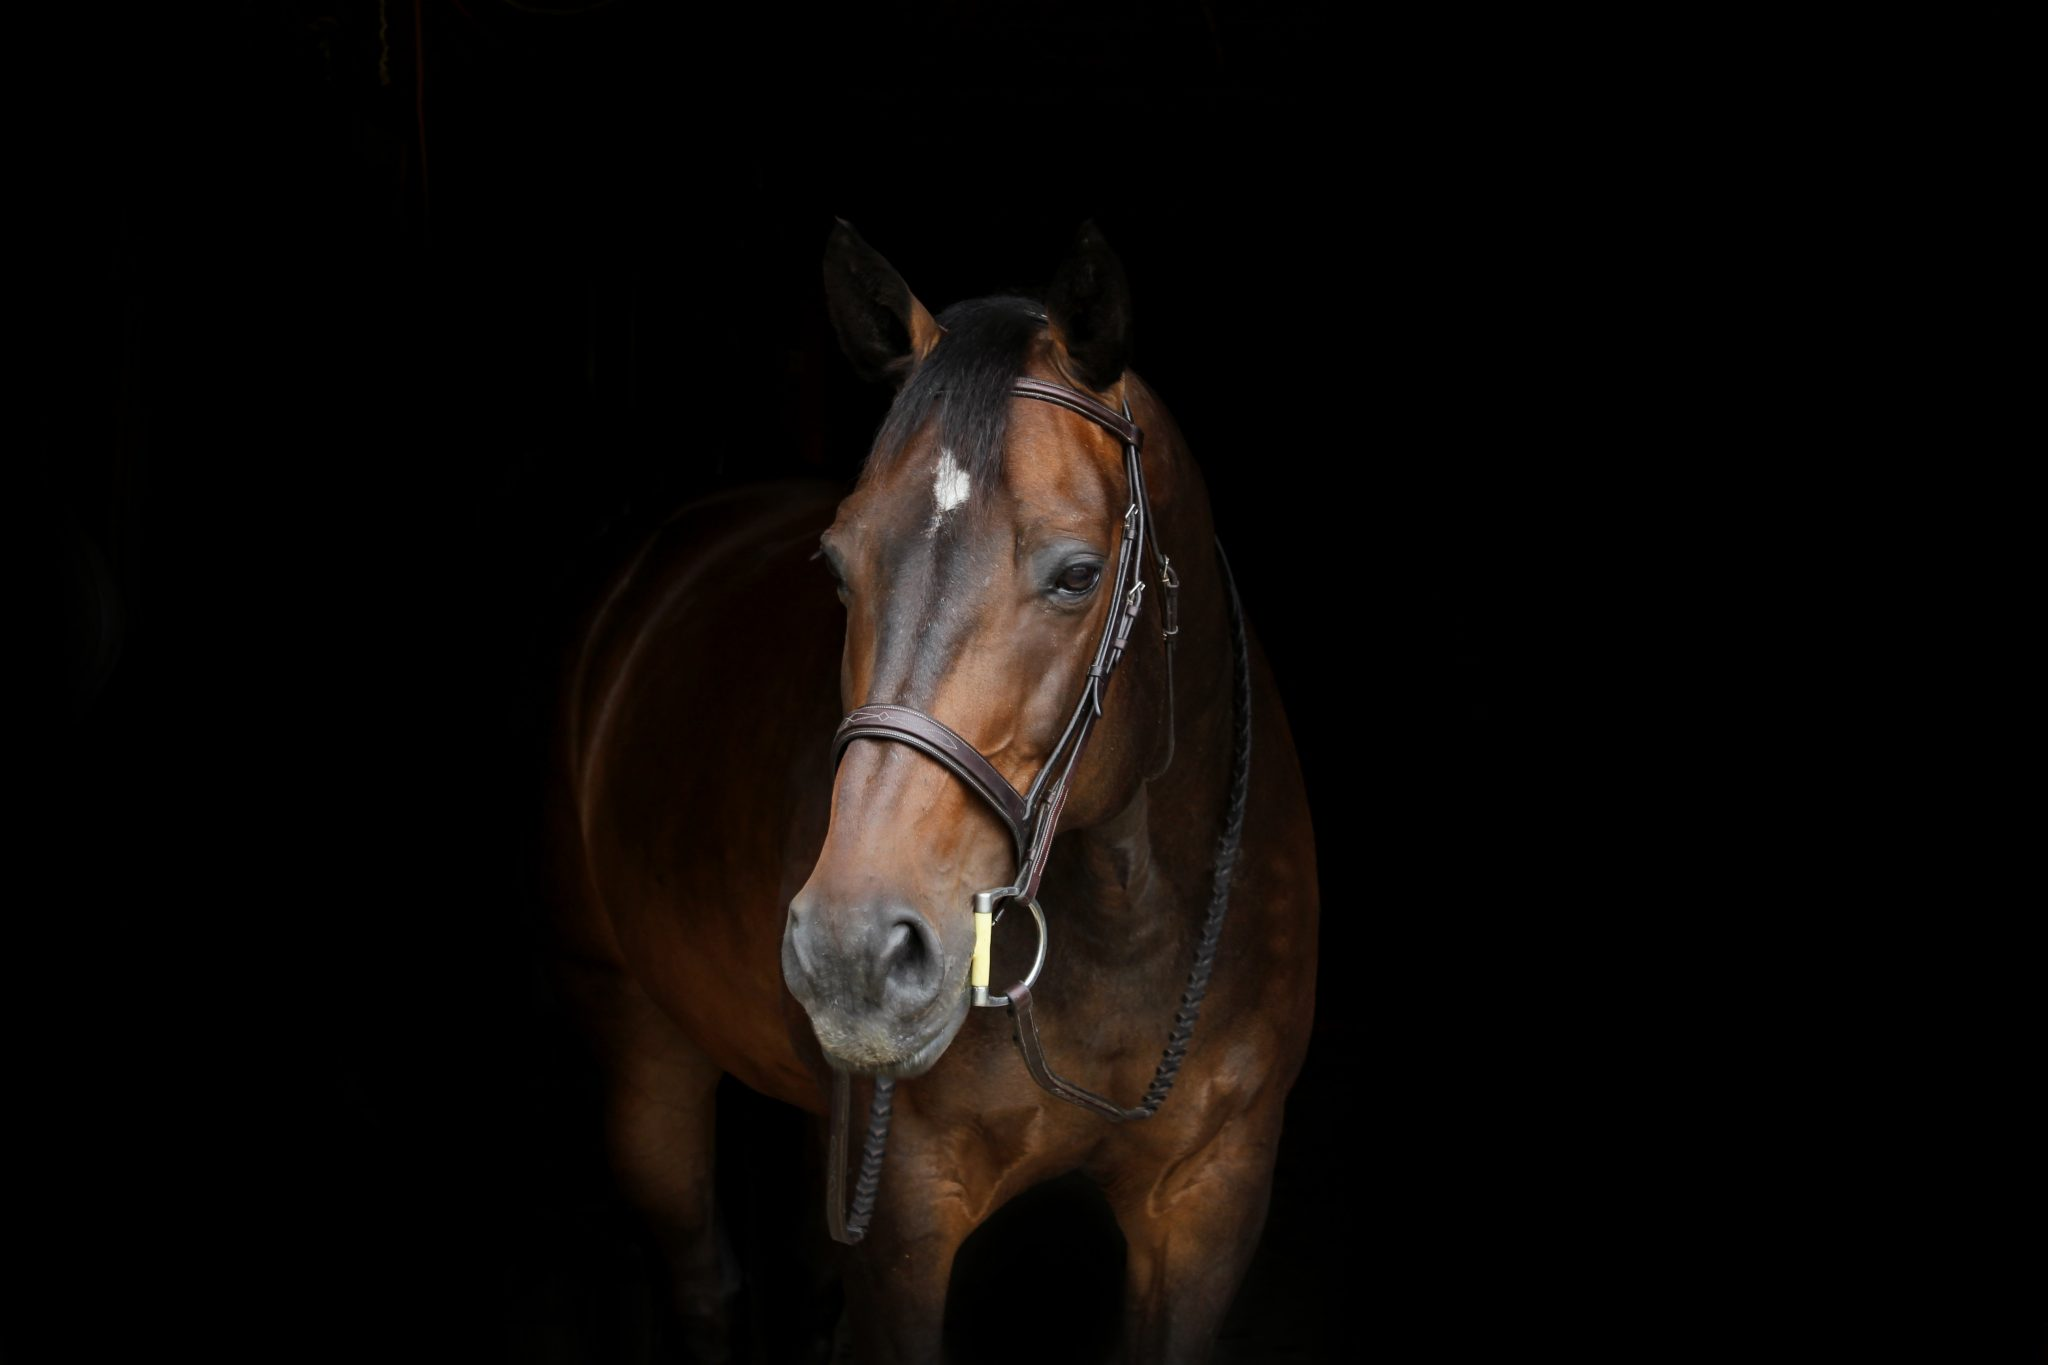 Broadcast PR: Brooke - Every Horse Remembered